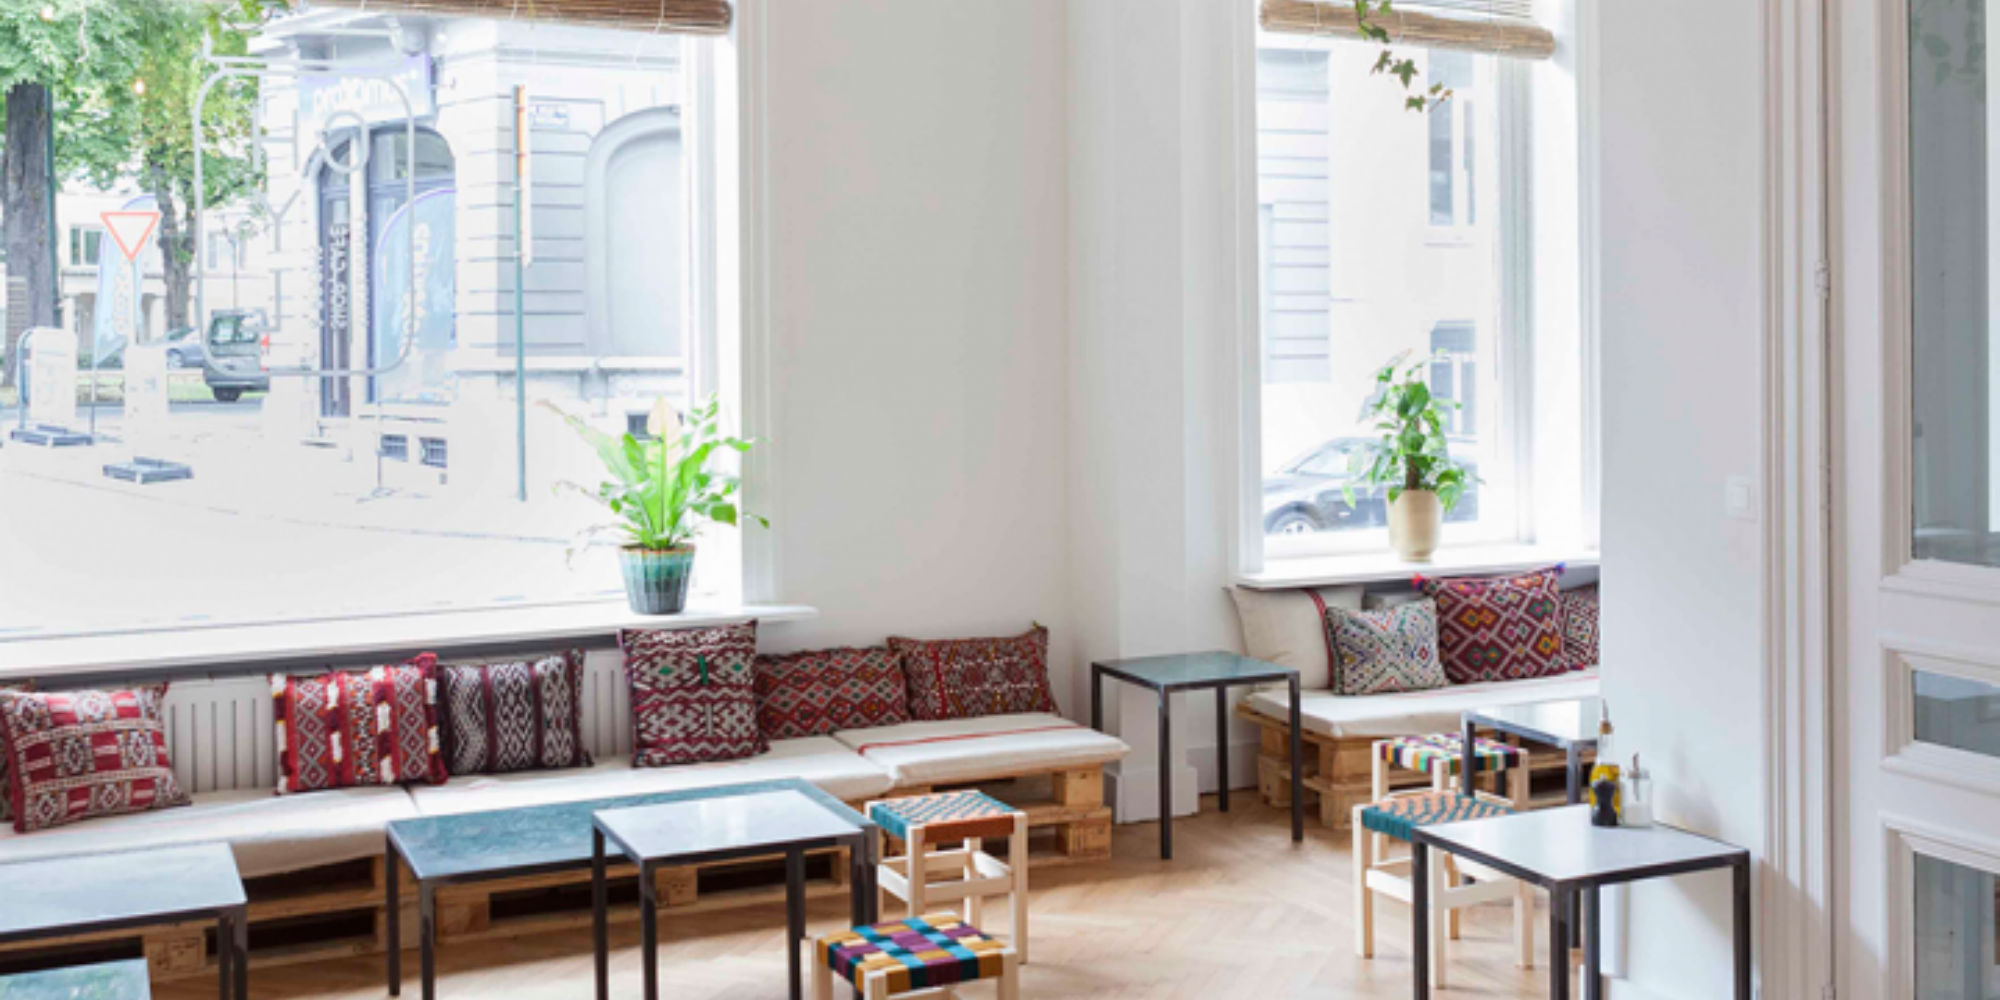 Brunch Chyl (1000 Ixelles)